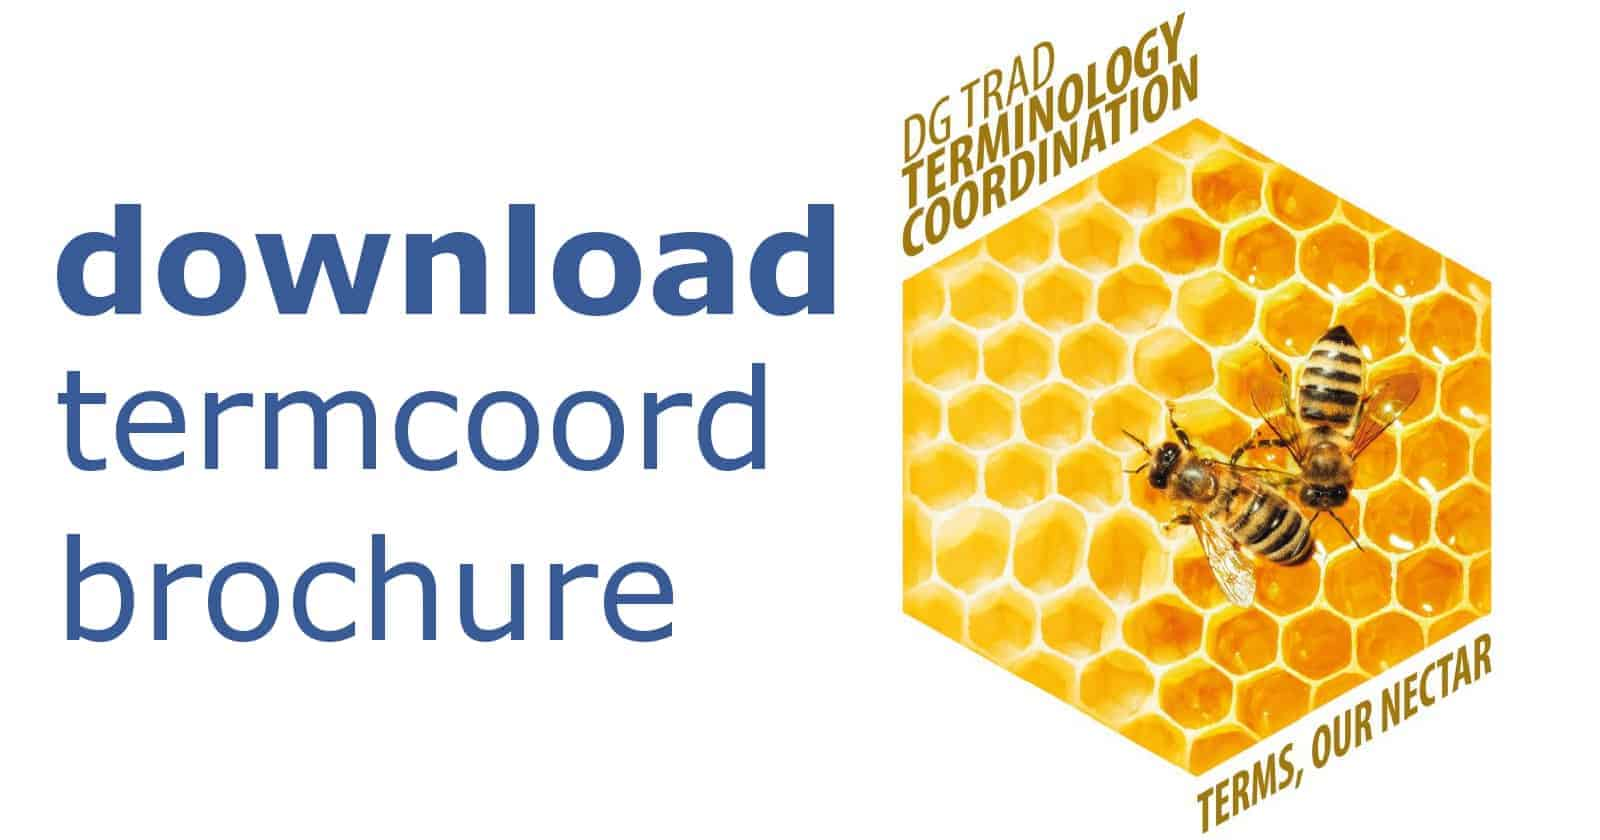 download termcoord brochure